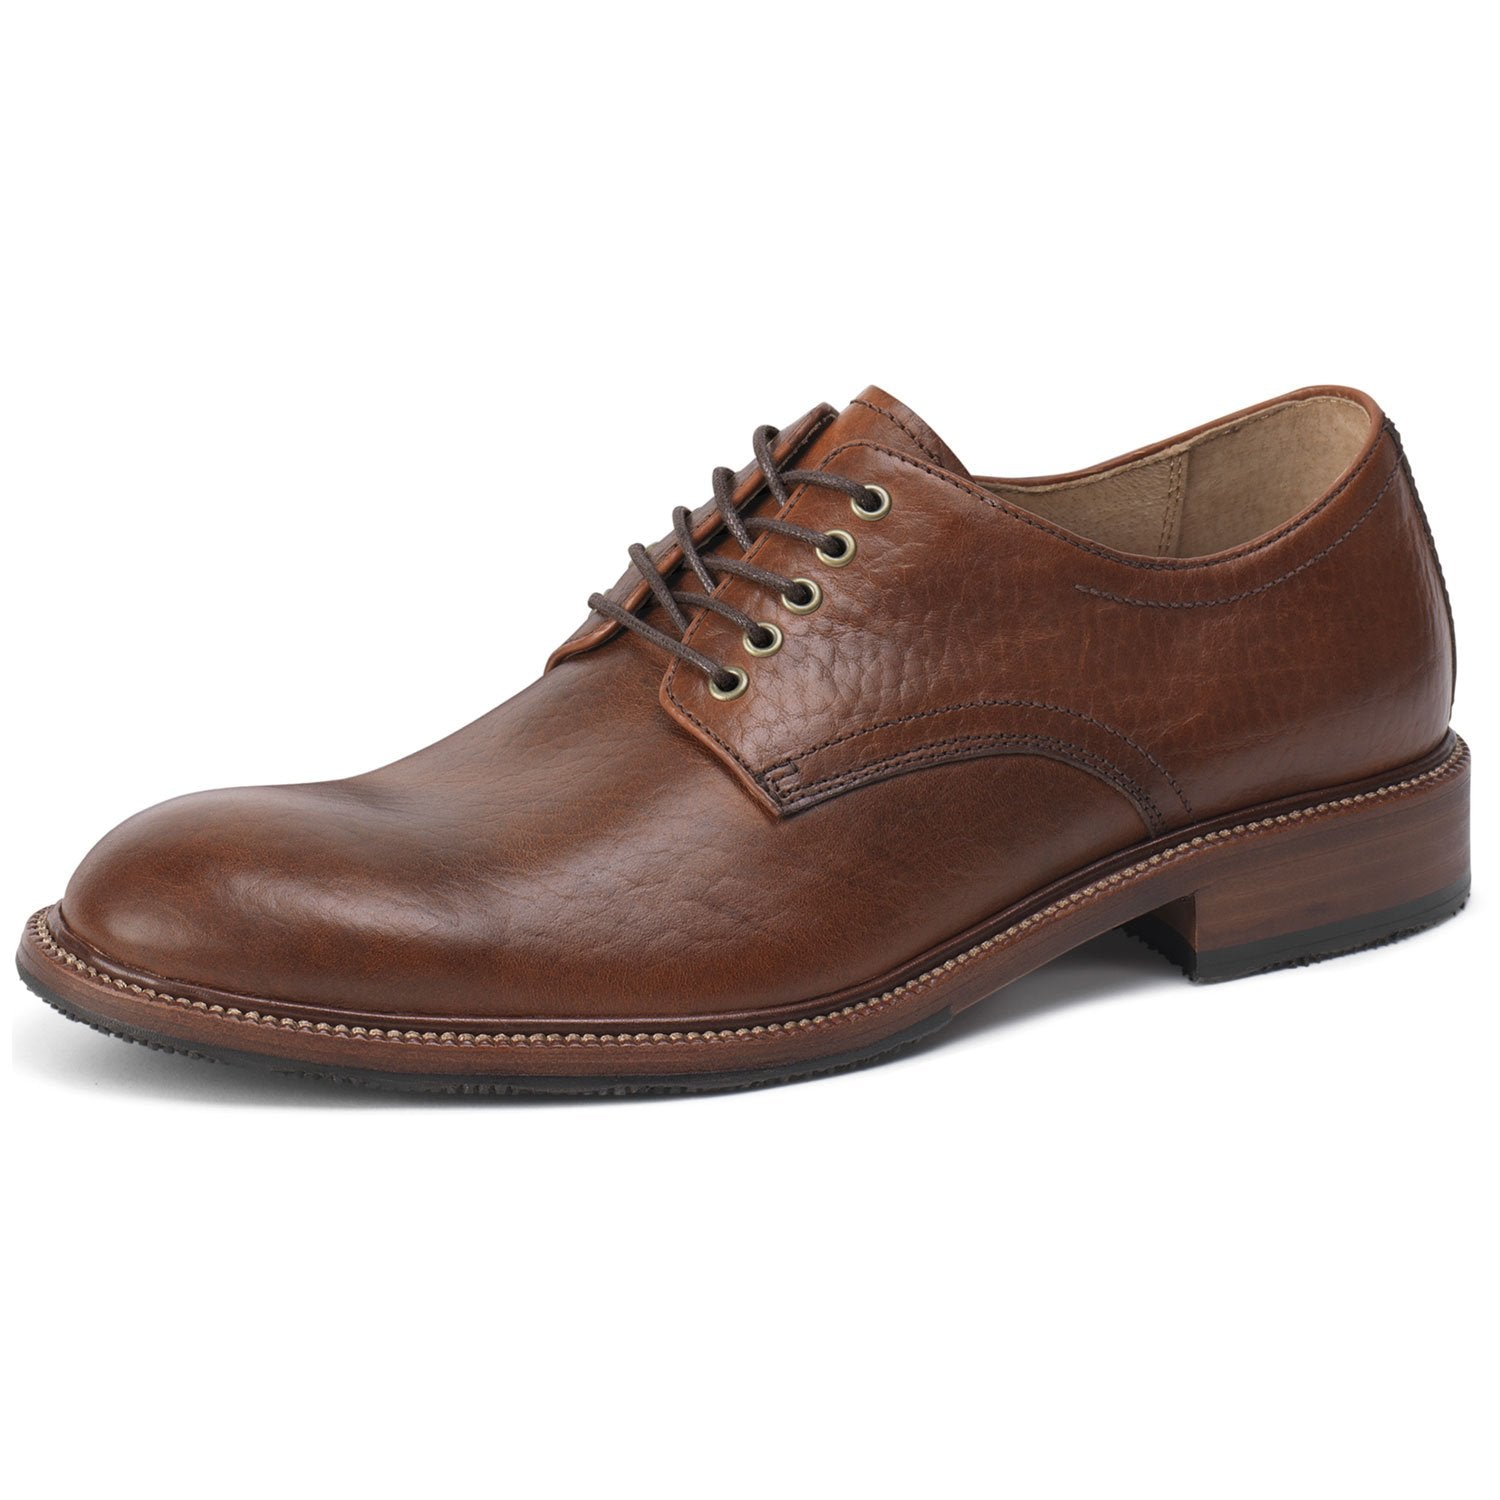 Men's Landry Plain Toe Oxford - Oak Hall